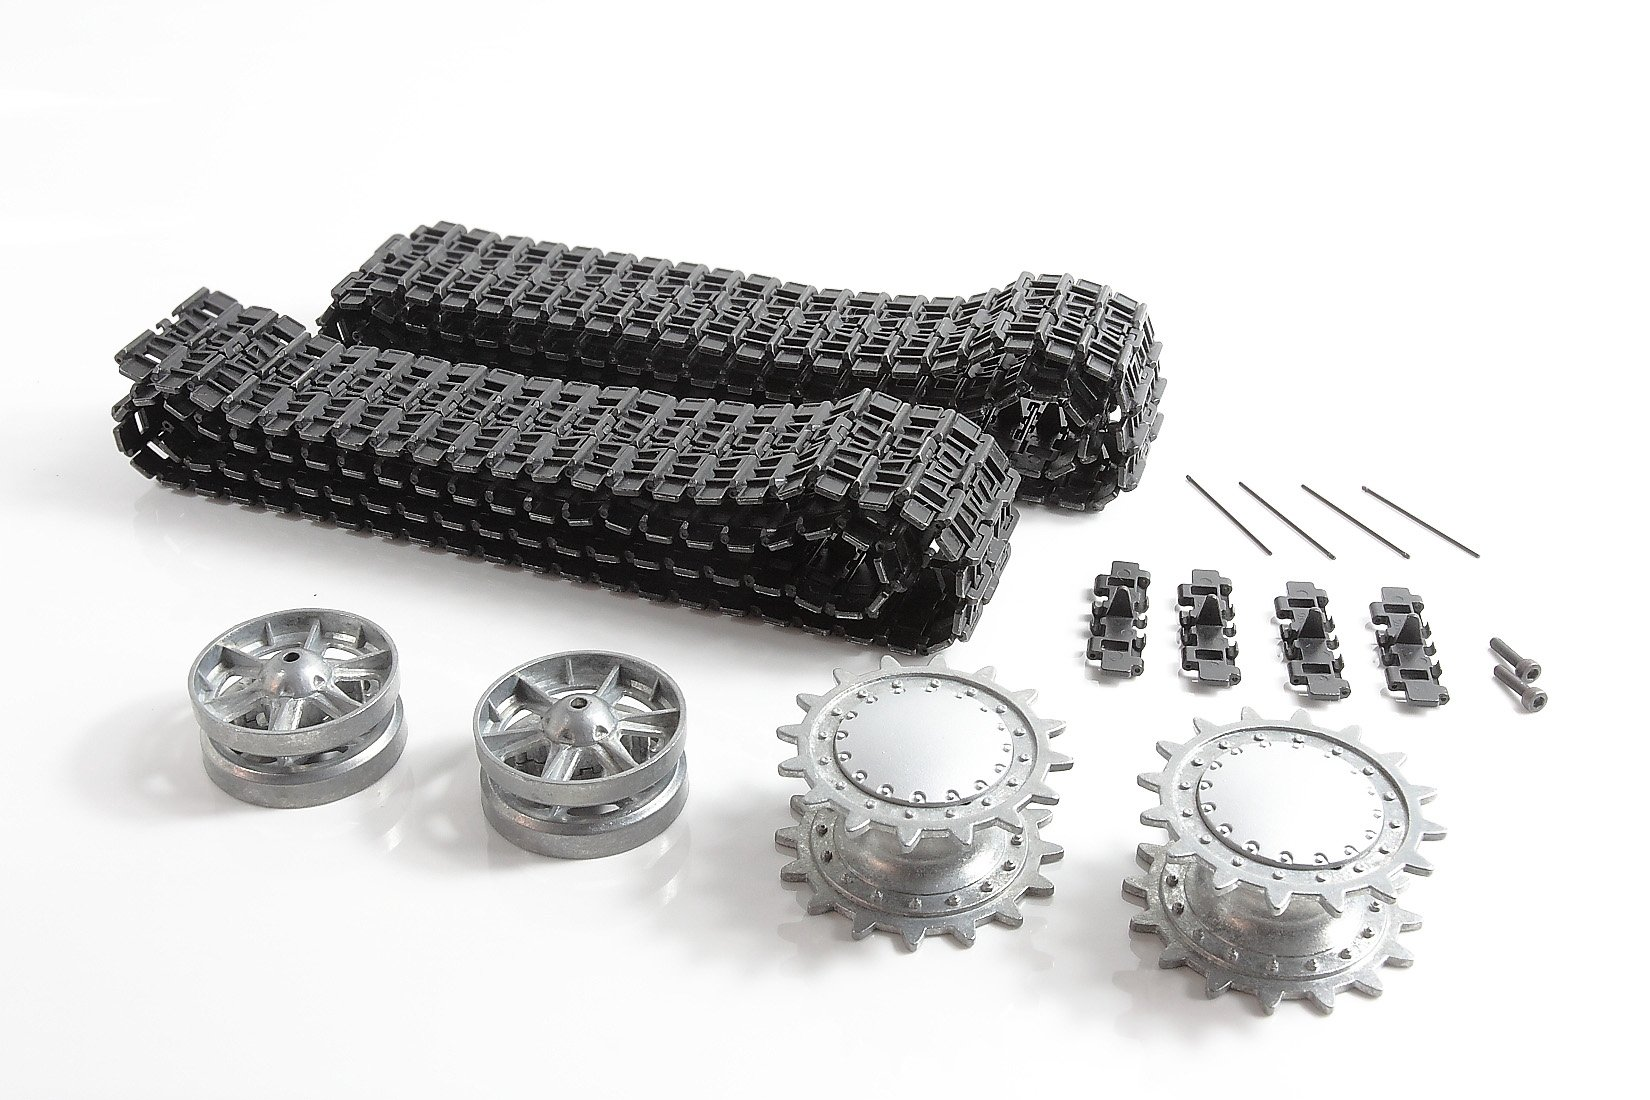 Mato Metal Upgraded Tracks Sprockets Idler Wheels With Bearing For Heng Long 3878-1 1/16 Scale Russian KV-1 RC Tank